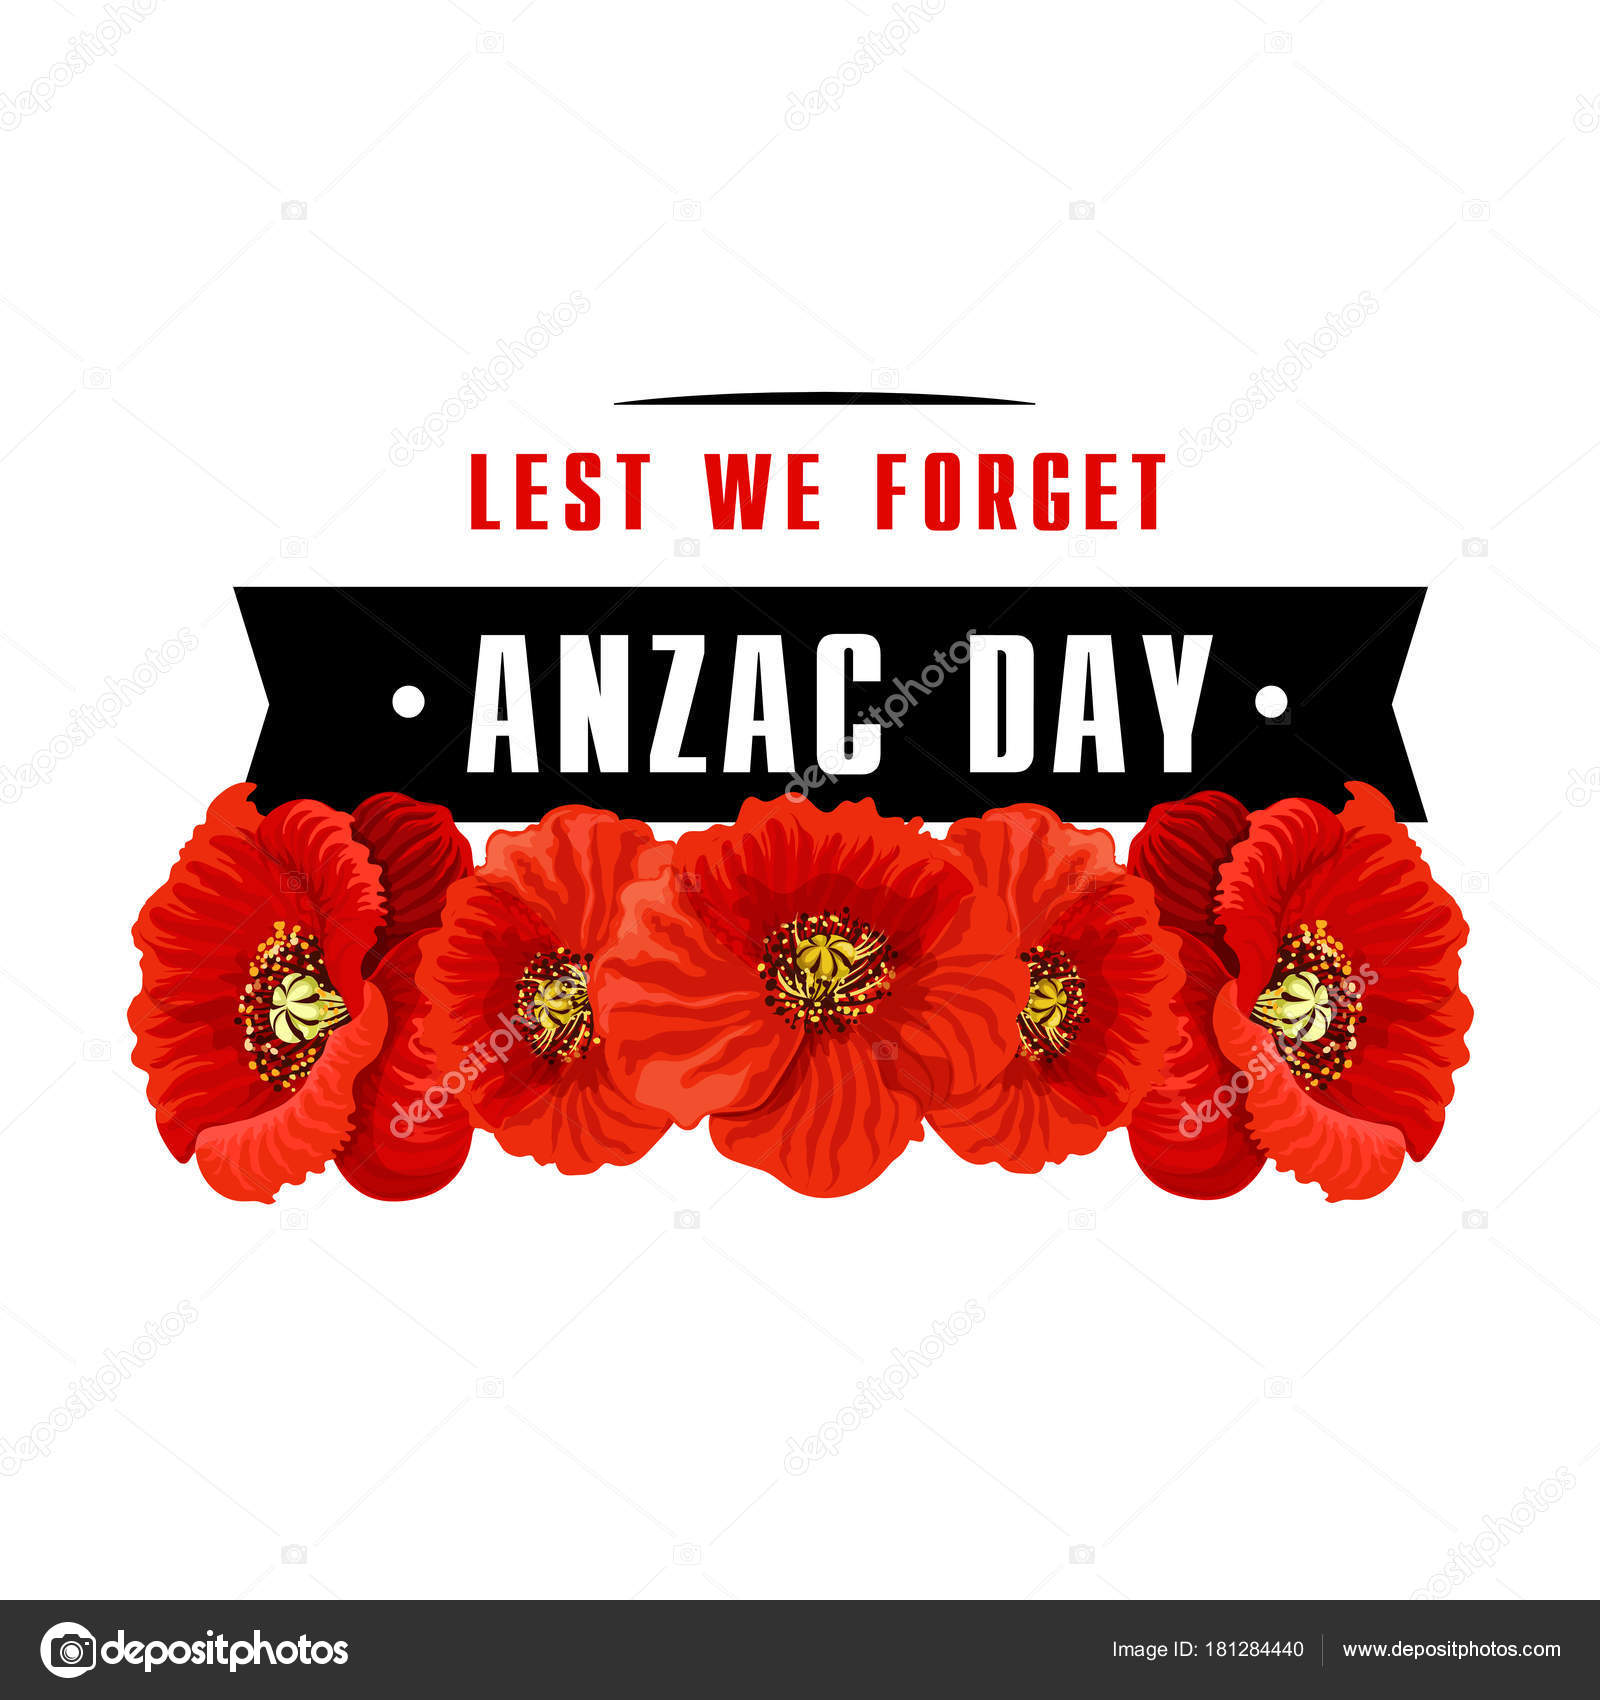 Anzac poppy flower icon with lest we forget banner stock vector anzac day poppy icon with lest we forget banner red poppy flower with black ribbon memorial card for australian and new zealand army corps remembrance day mightylinksfo